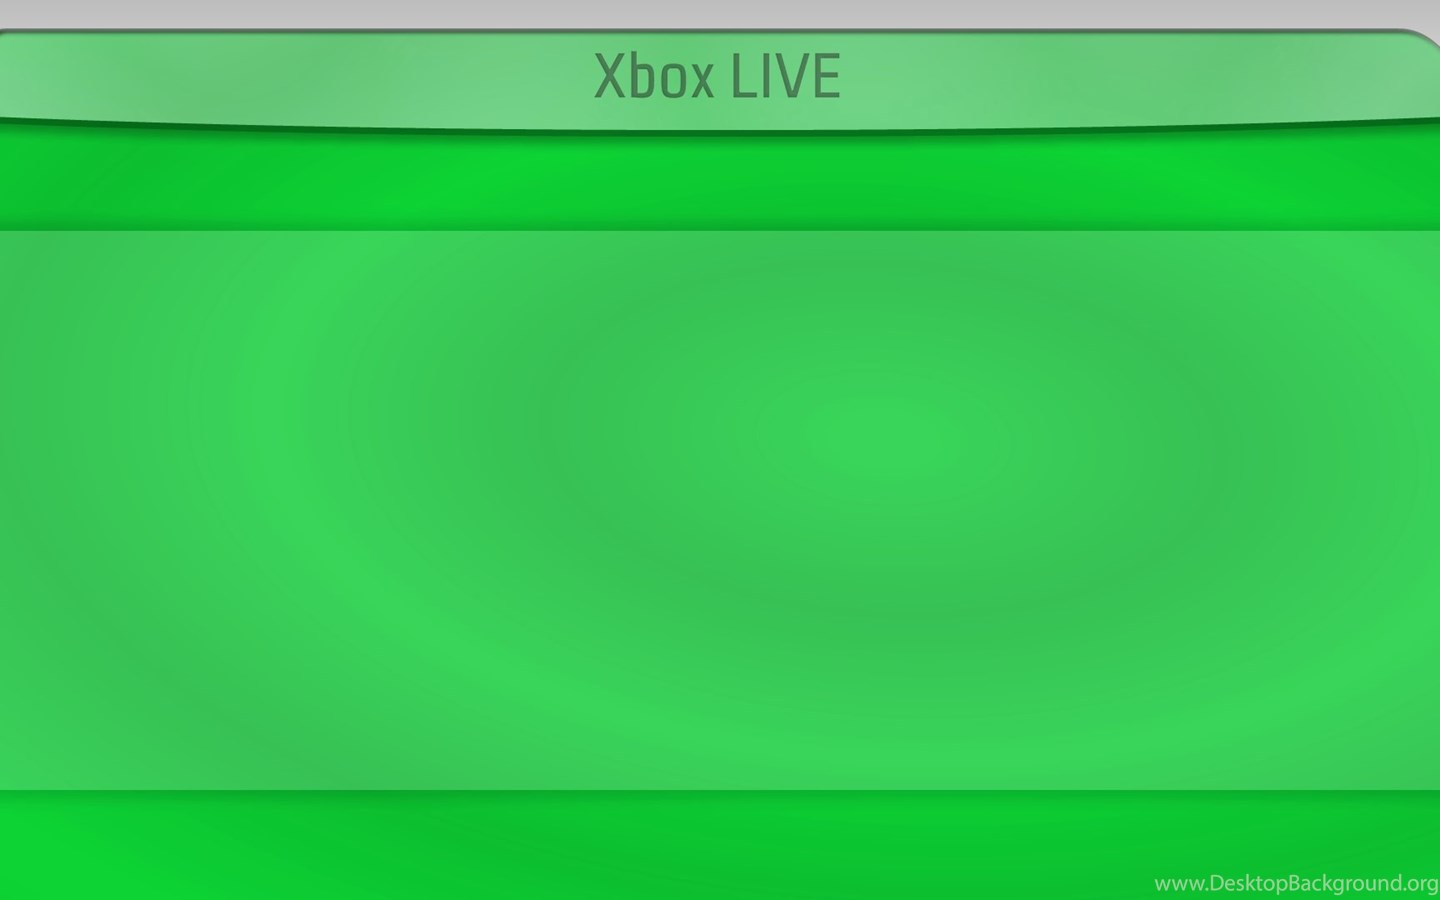 Live Wallpaper For Iphone 3gs Xbox 360 Quot Blades Quot Dashboard Inspired Theme Xboxthemes